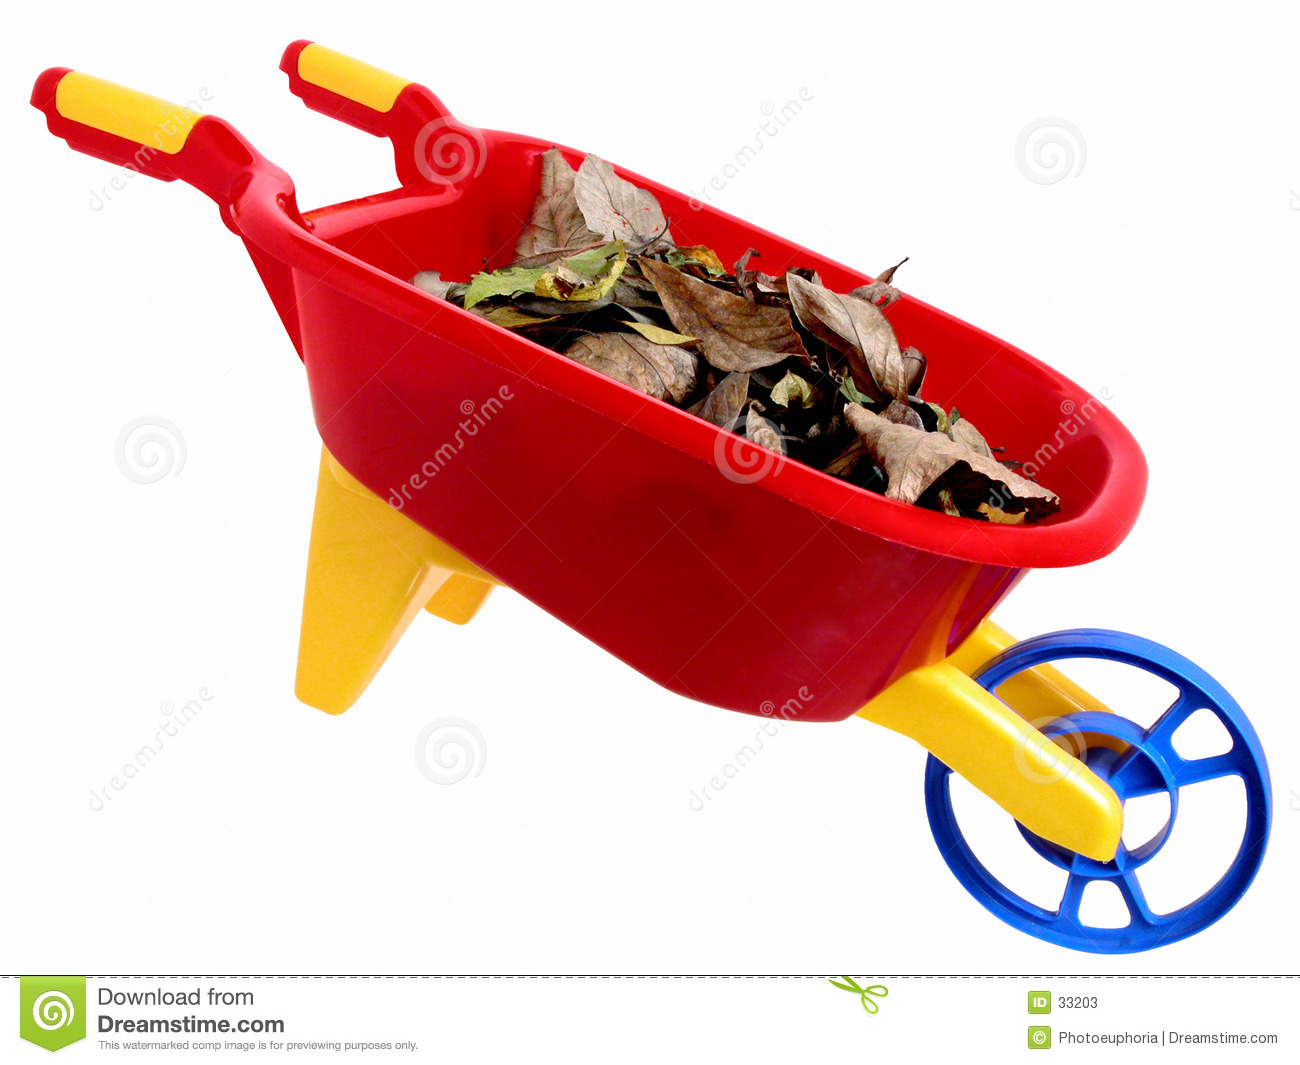 Toys: Plastic Wheelbarrel and Dry Leaves (2 of 2)